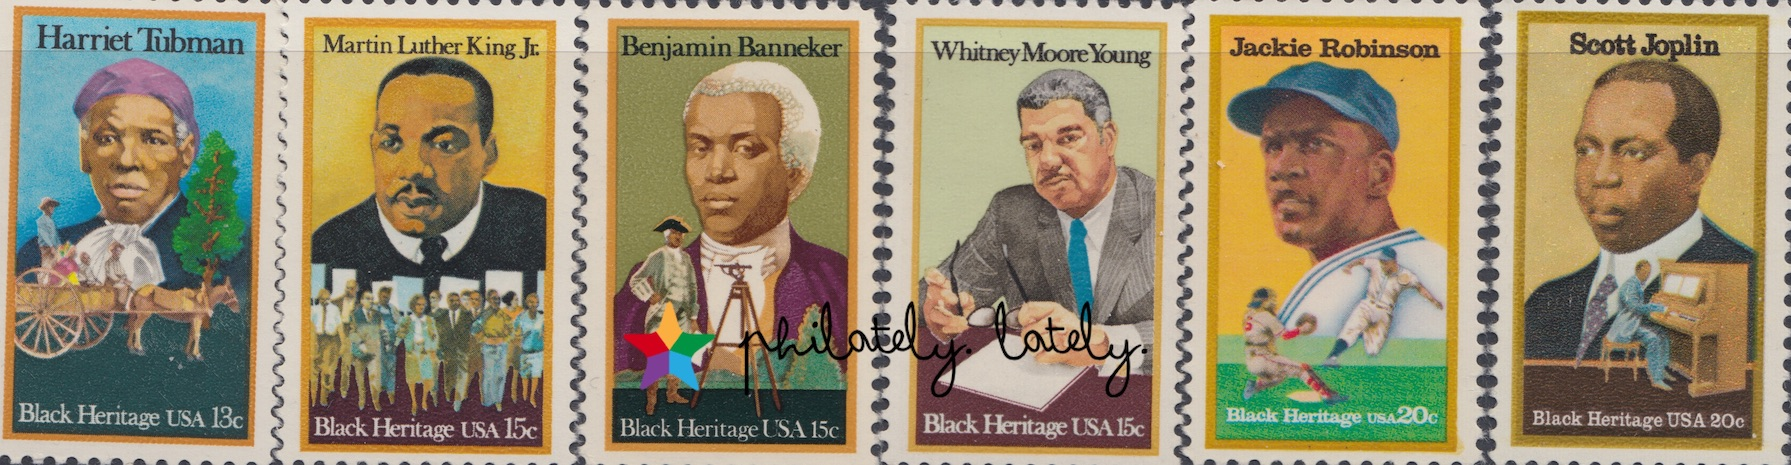 001_Black_Heritage_US_Stamps